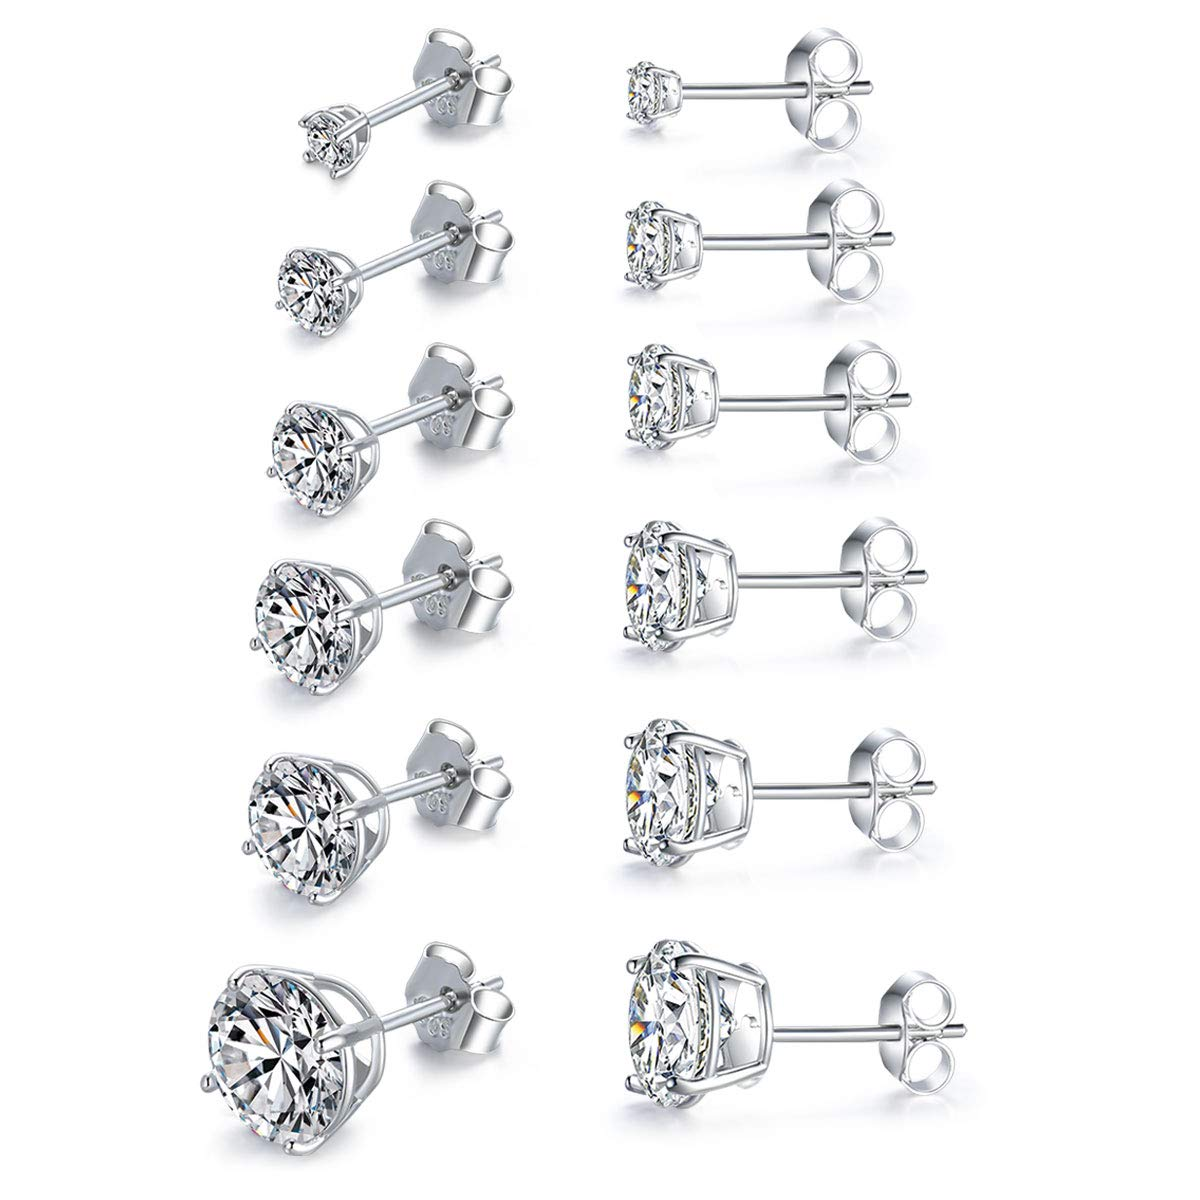 MASOP 2-8mm Sterling Silver Cubic Zirconia Stud Earrings Set Hypoallergenic Tiny Round Ball 14K White Gold Plated Round Cut CZ Simulated Diamond Cartilage Studs for Girls Women Men